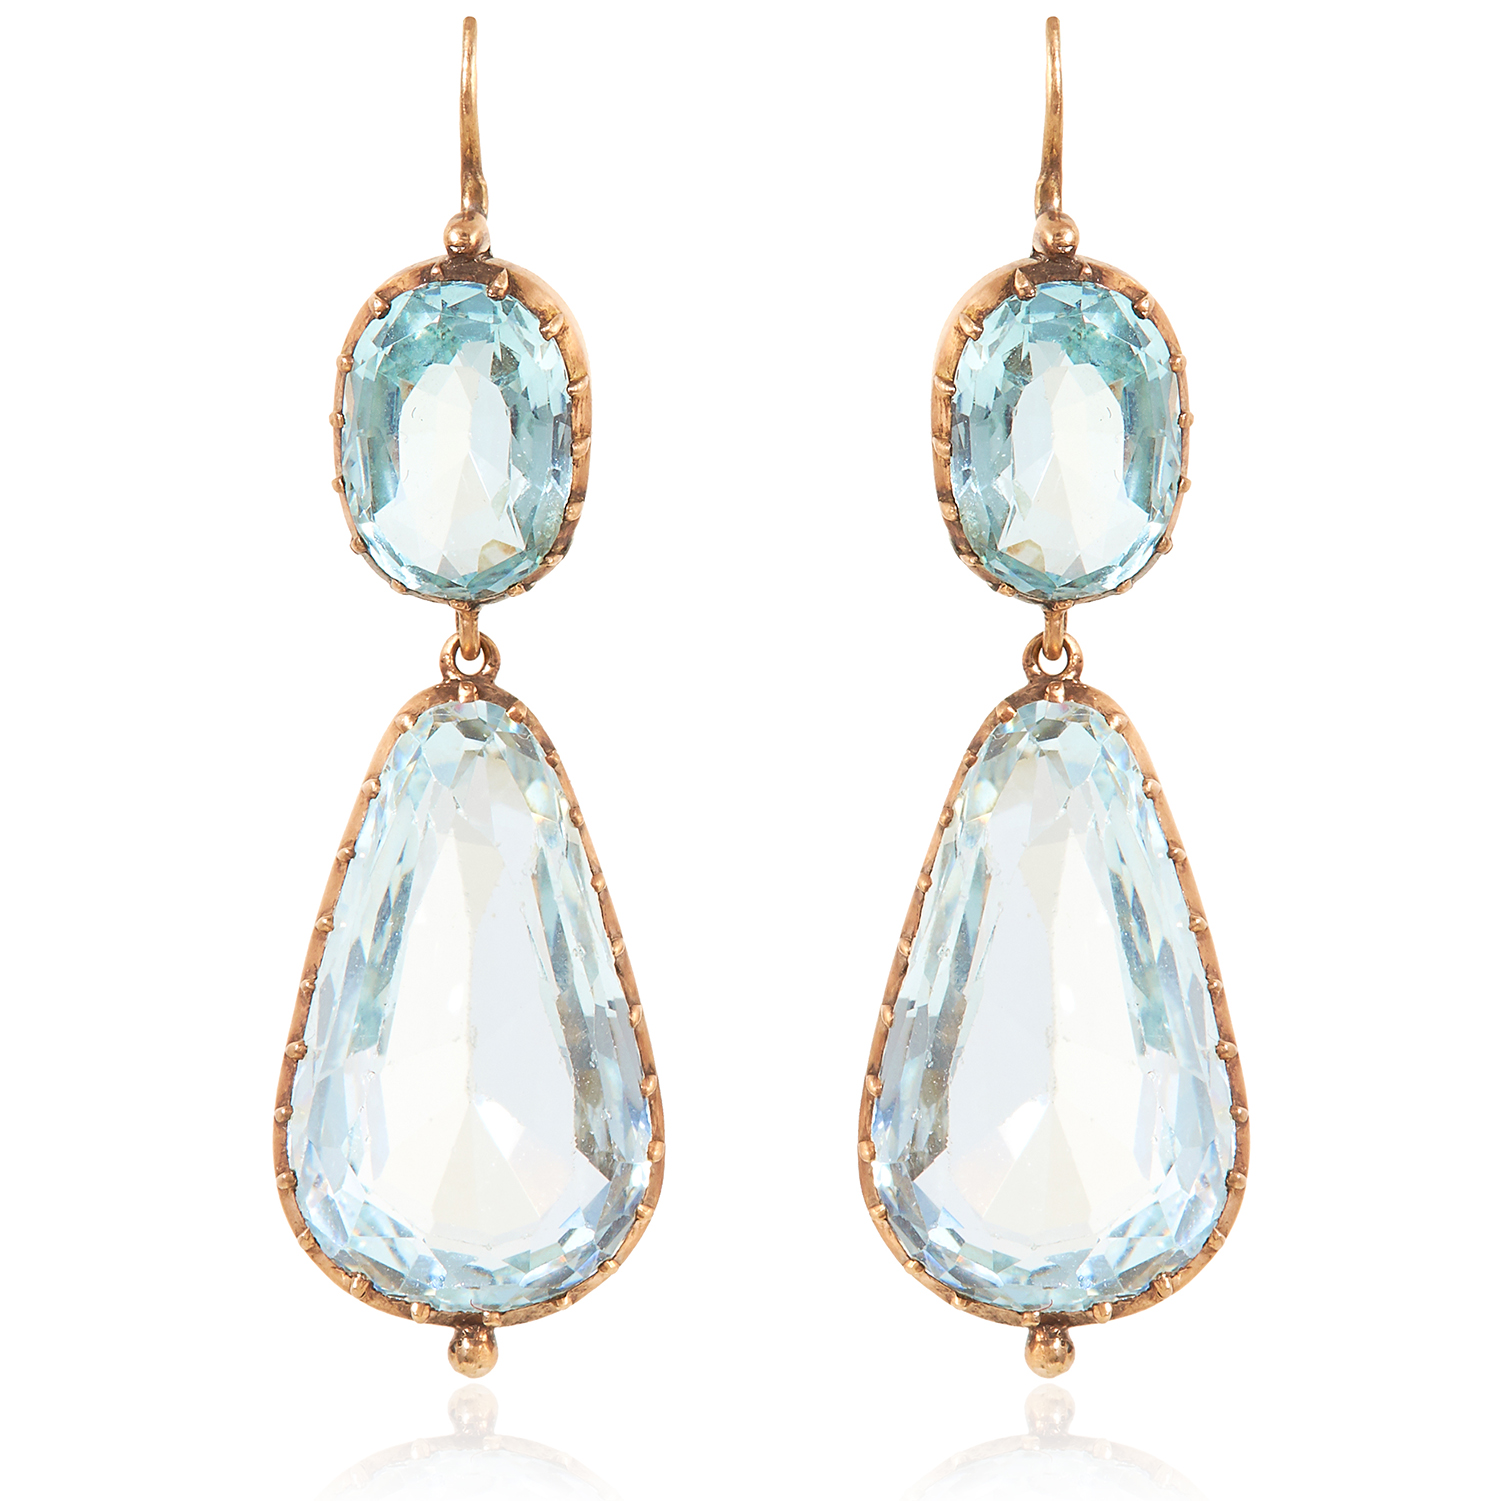 Los 17 - A PAIR OF ANTIQUE AQUAMARINE EARRINGS, EARLY 19TH CENTURY in high carat yellow gold, each formed